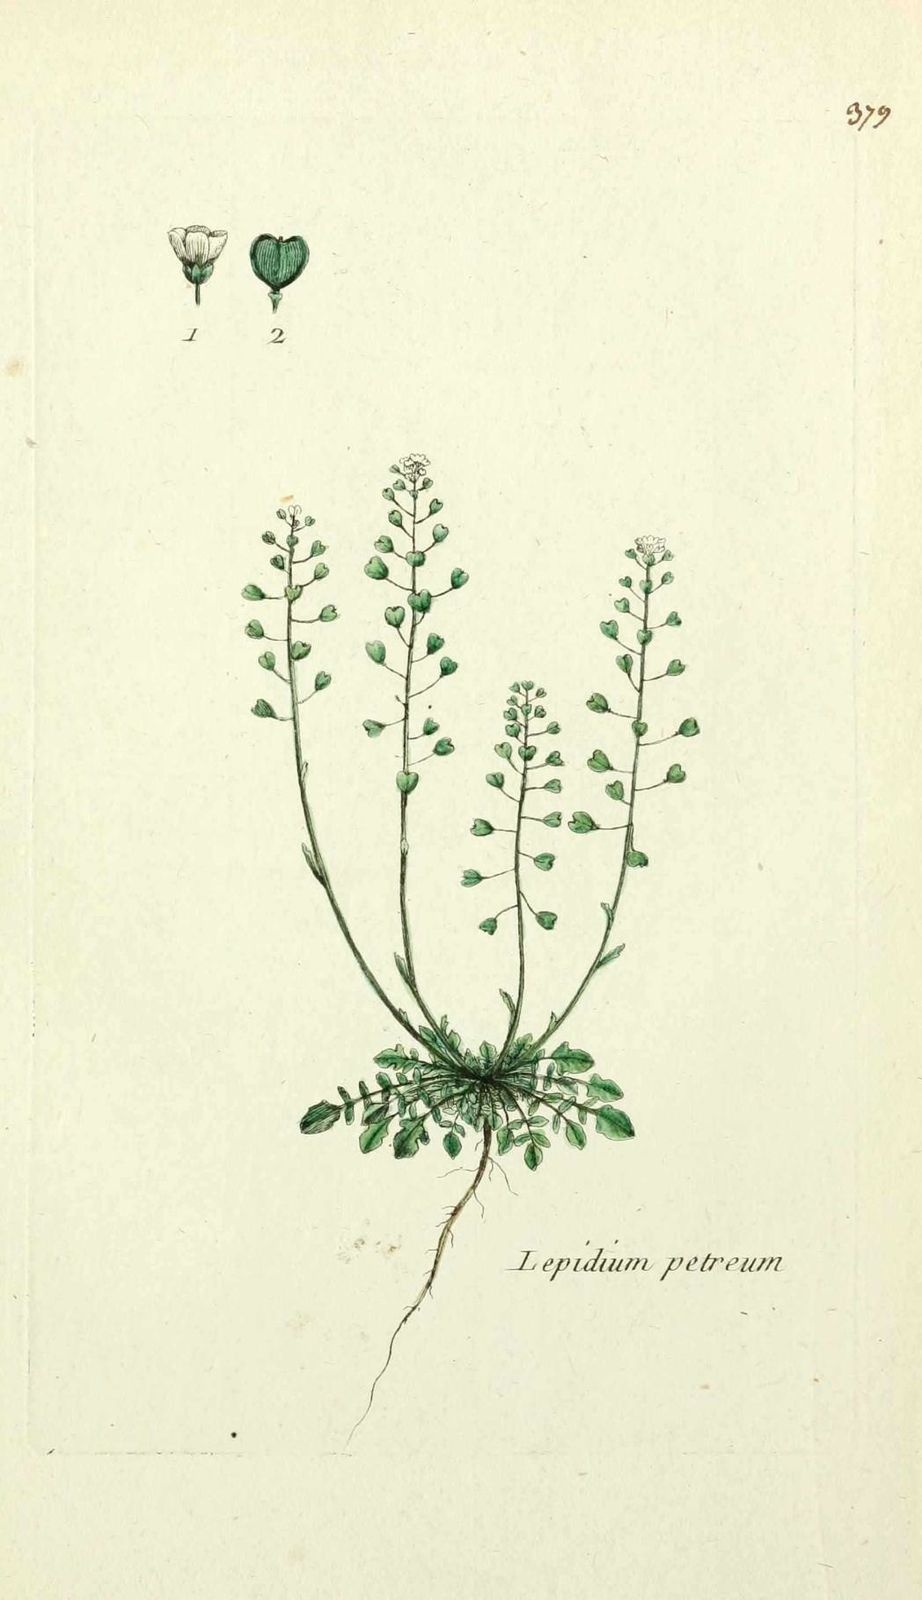 passerage menu - lepidium petraeum